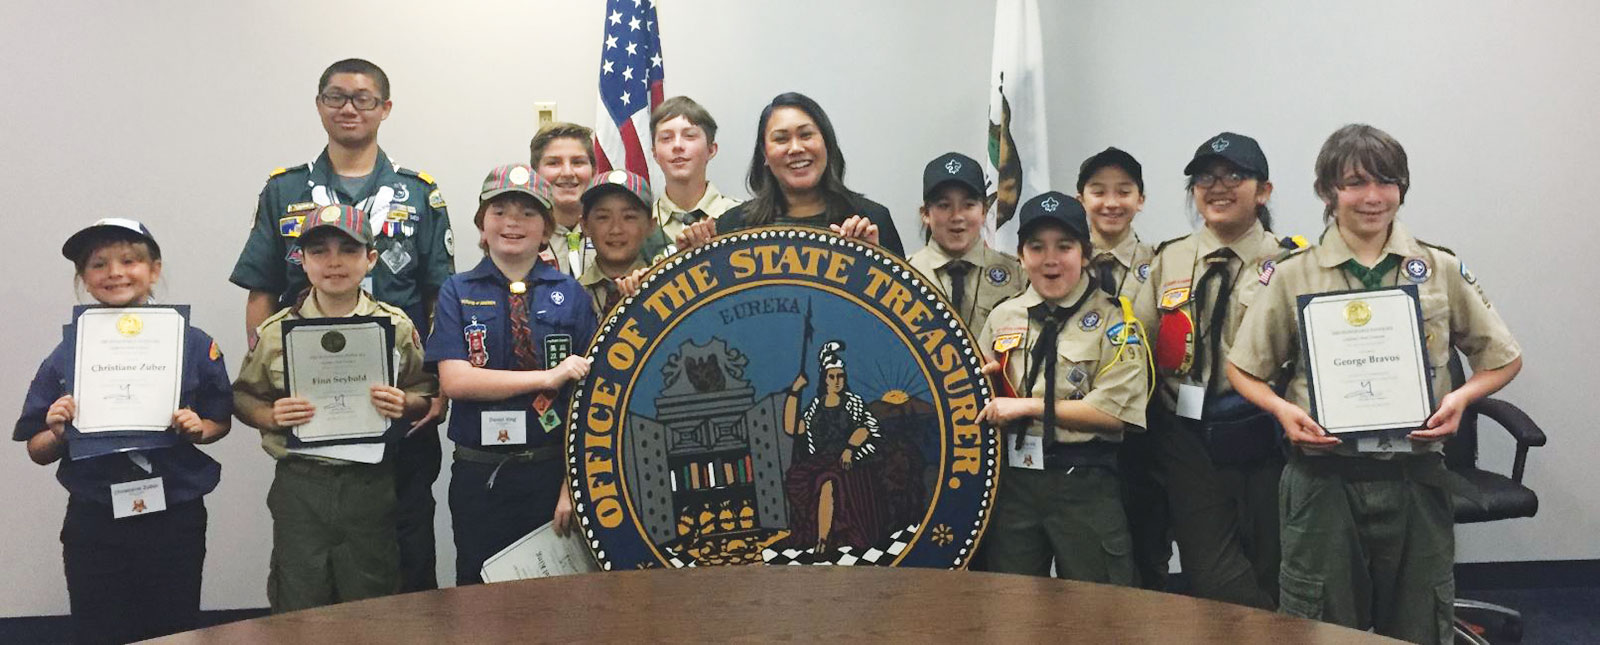 Chief of Staff Genevieve Jopanda with the visiting Piedmont Council Boy Scouts of America.